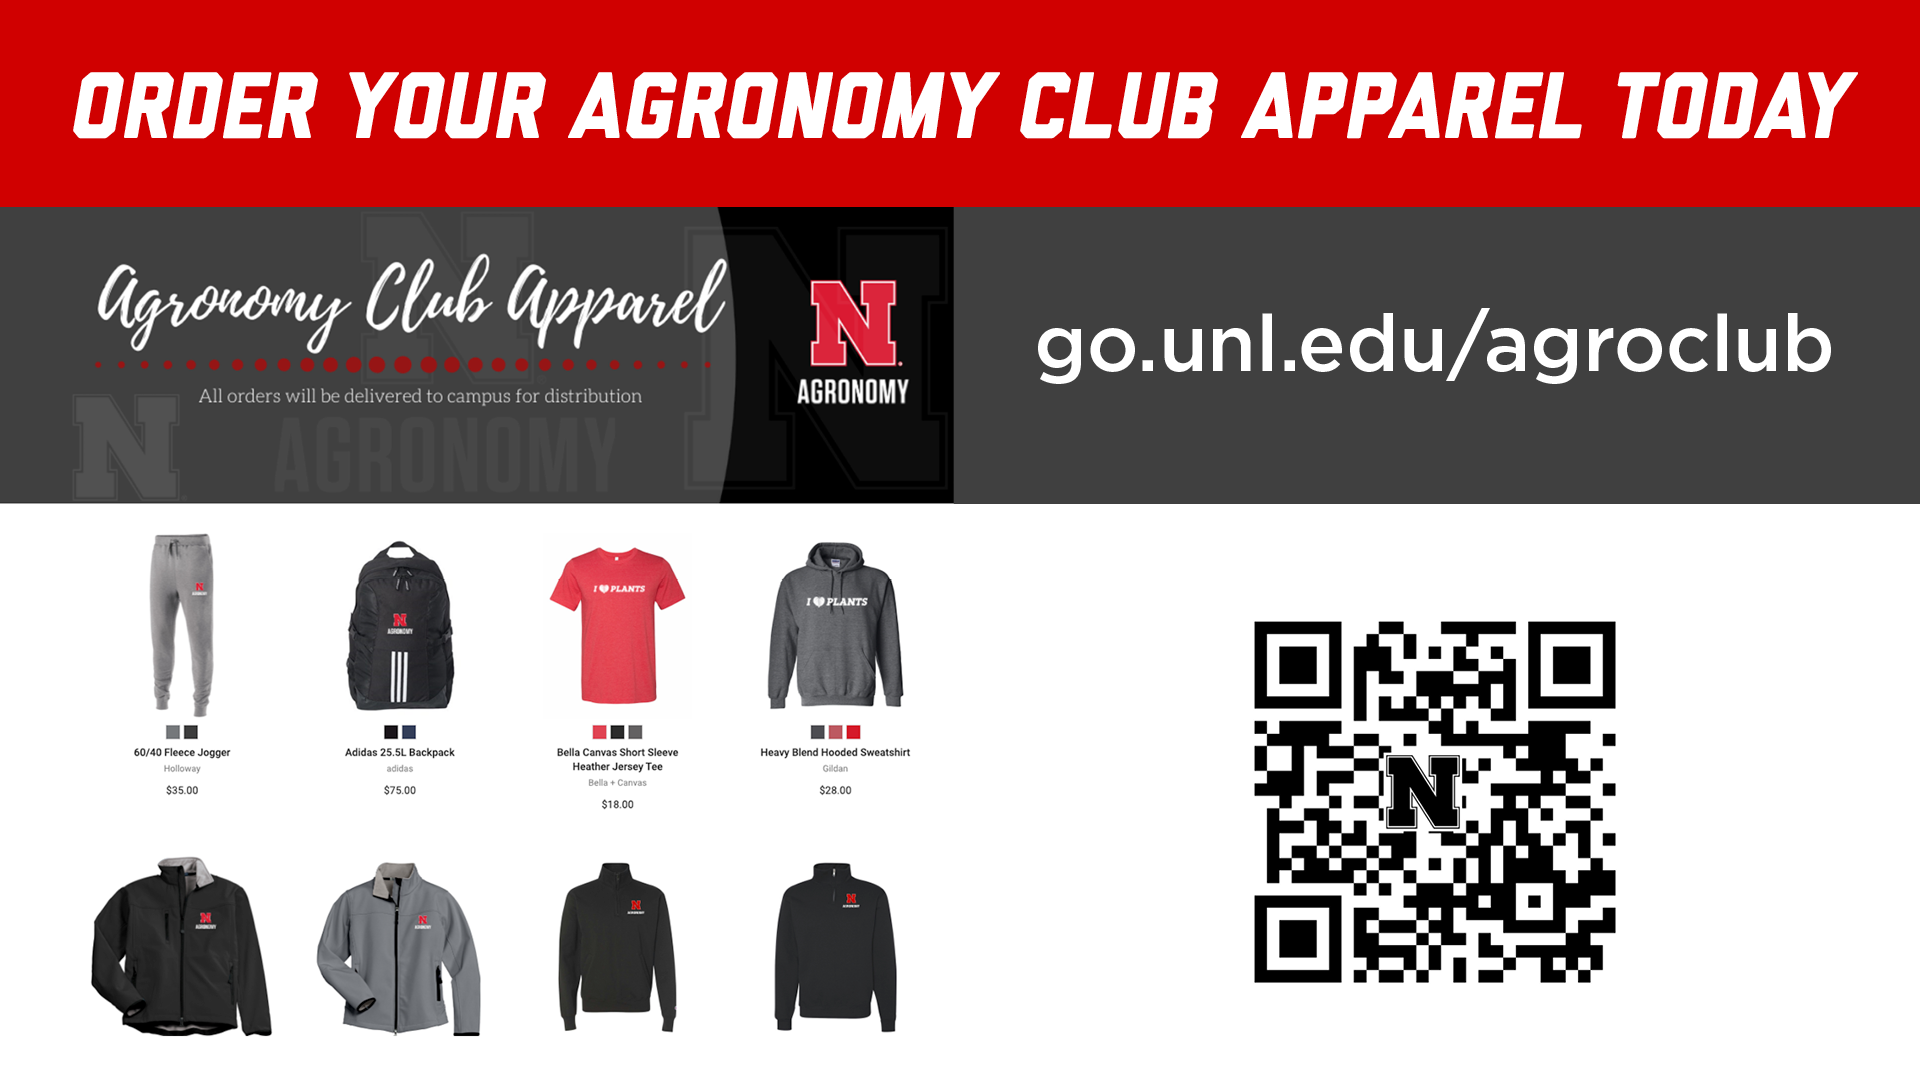 The Agronomy Club apparel sale is going on now until Feb. 21.